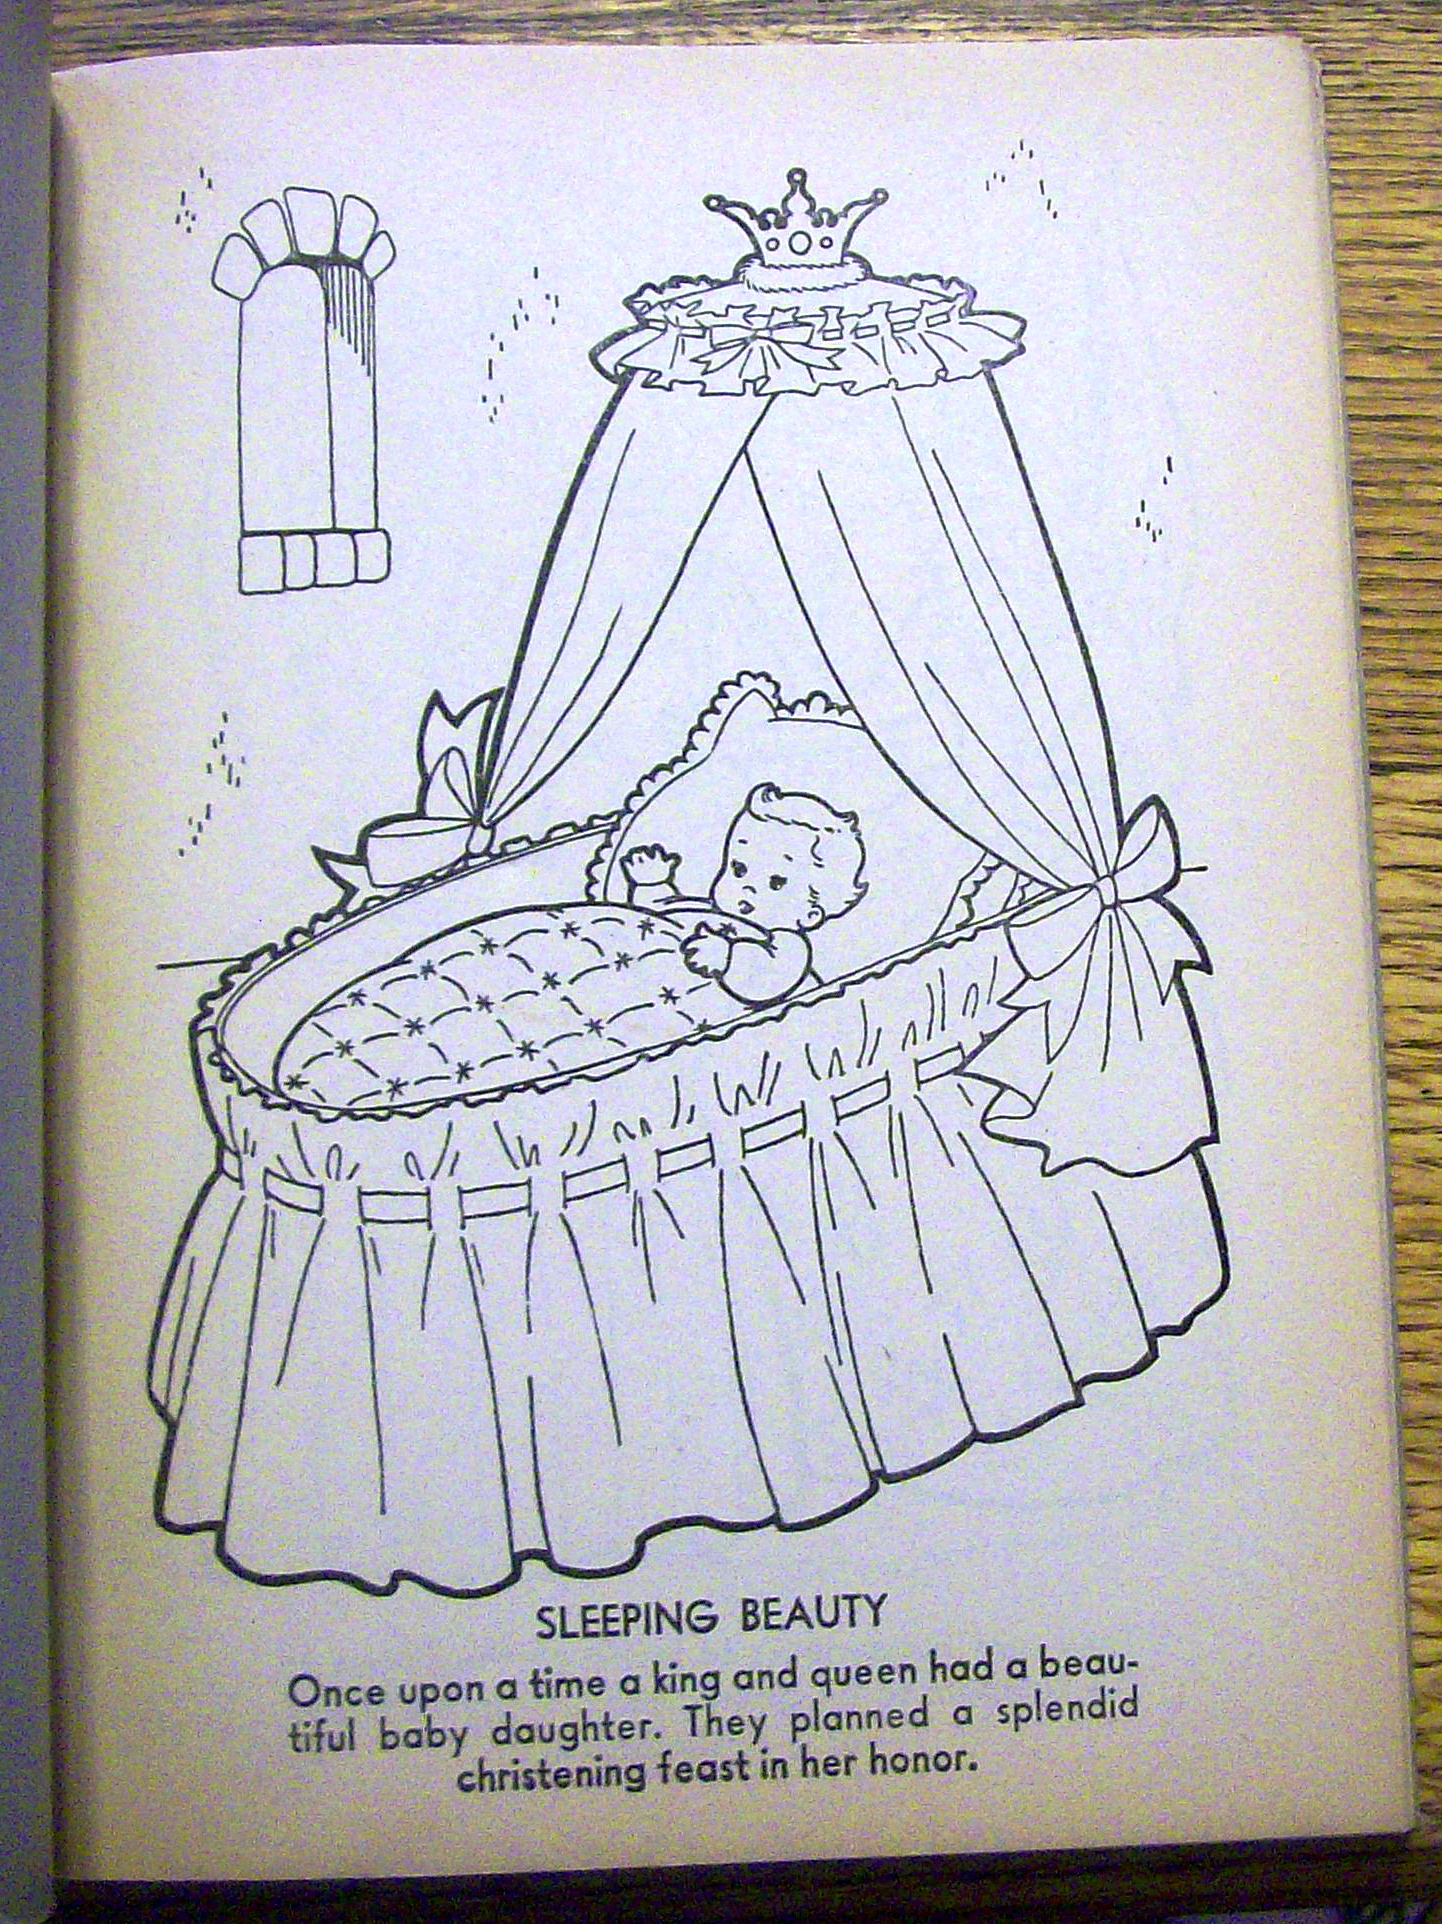 - Reading Sleeping Beauty Coloring Book 1960's Bonnie Books Coloring